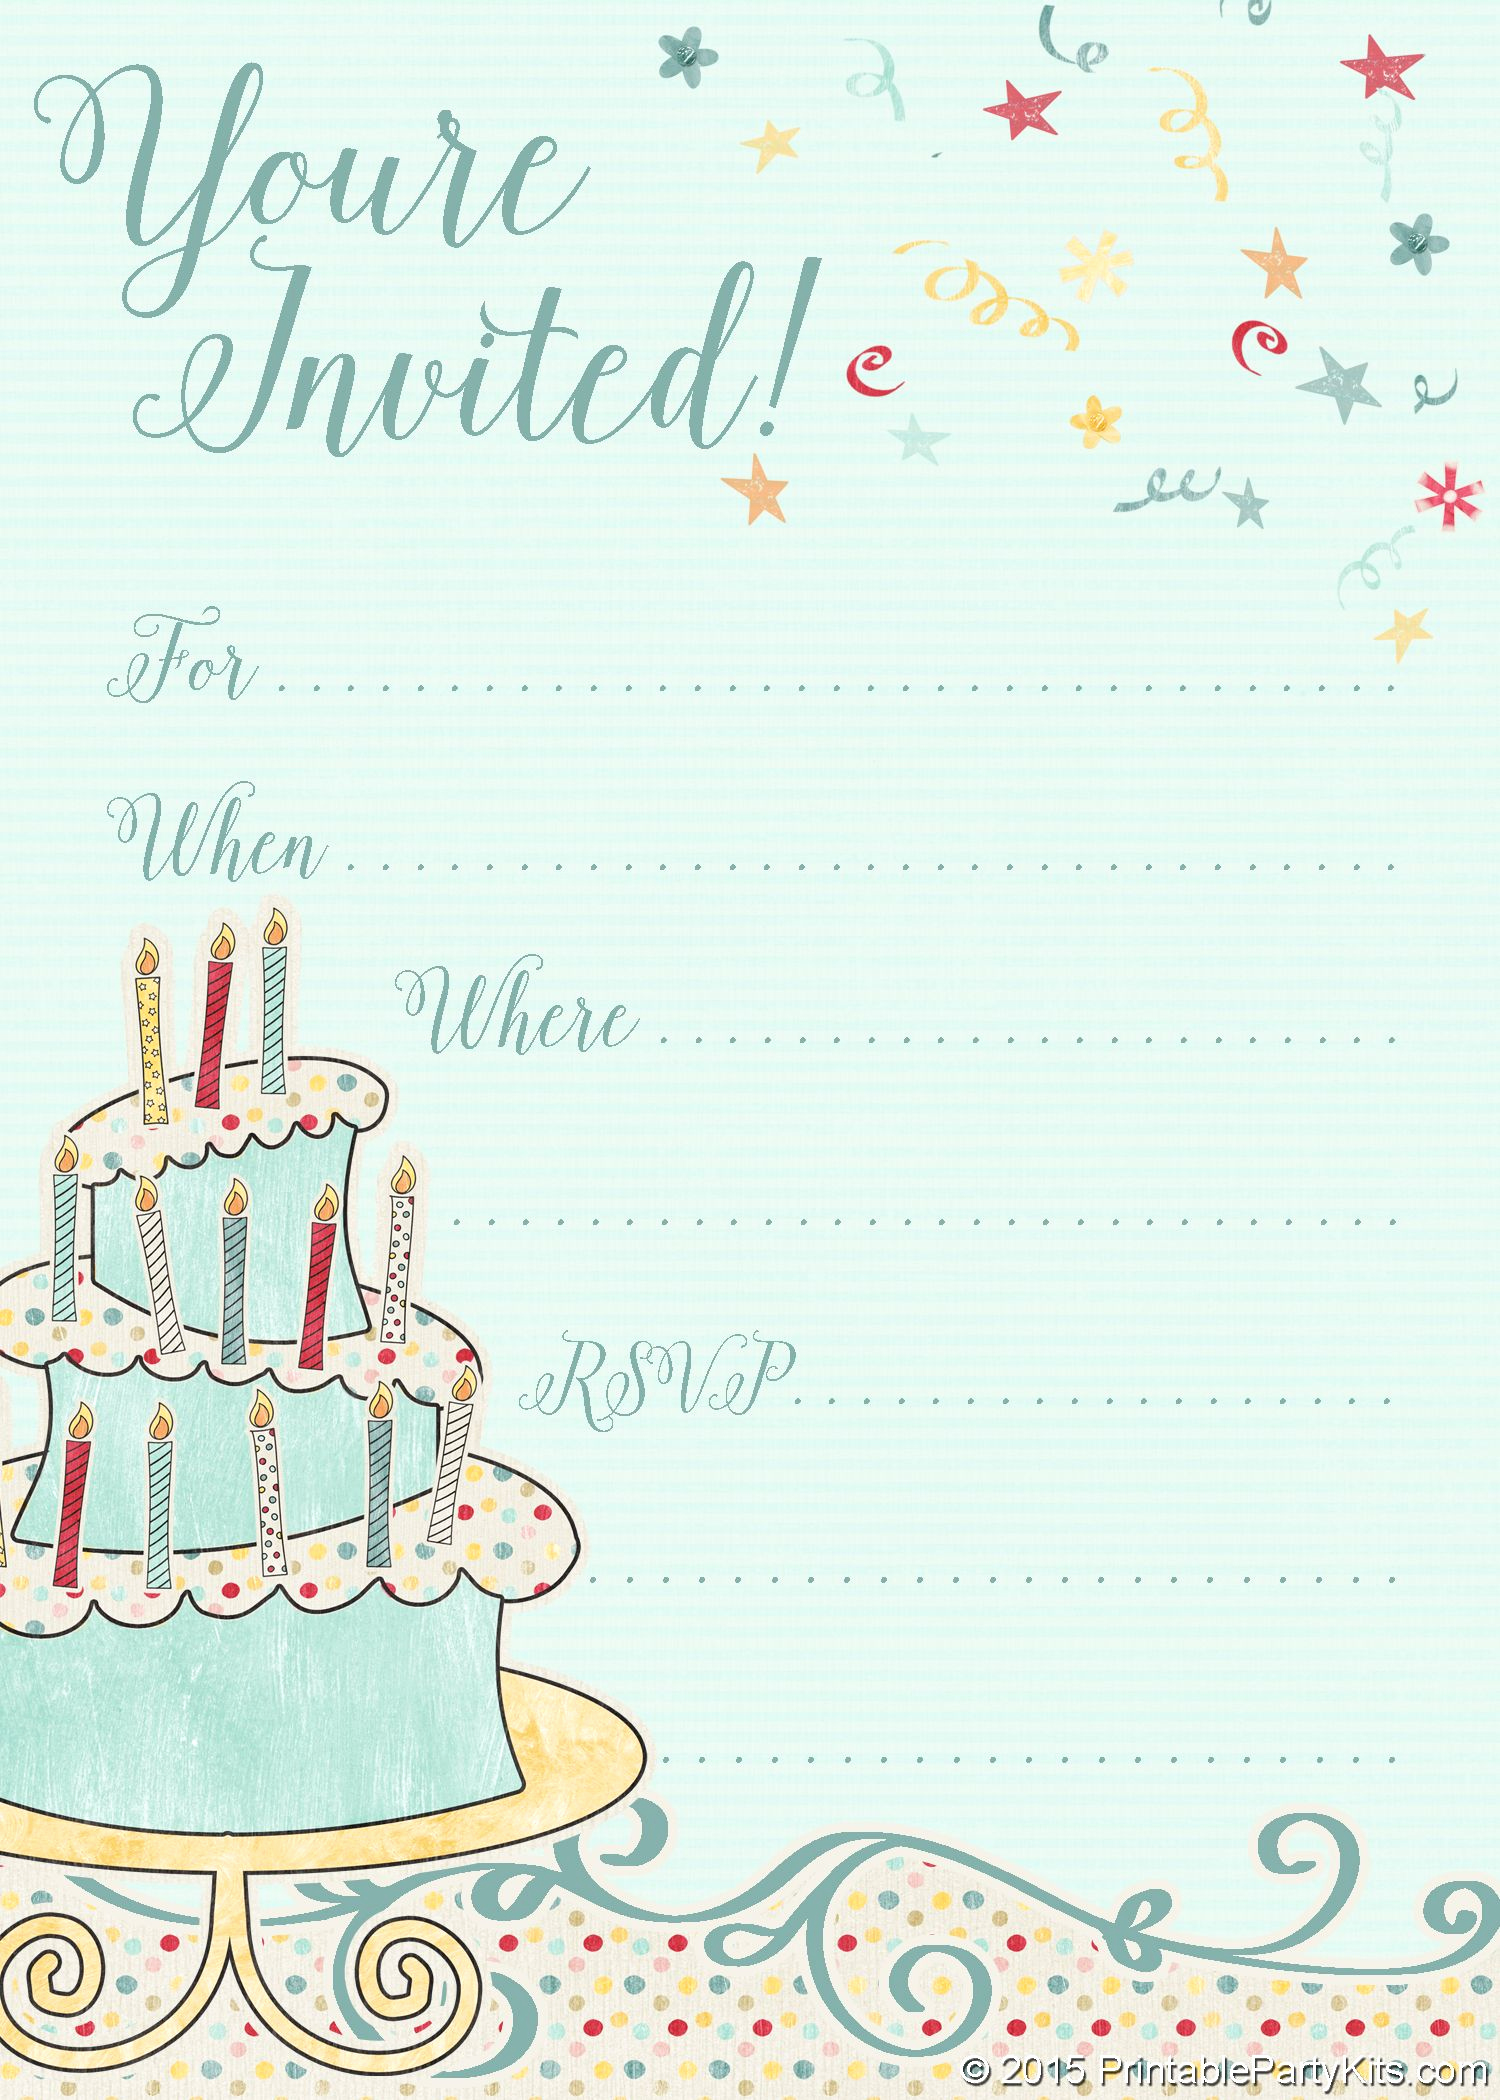 Birthday Invitation Card Sample Luxury Free Printable Whimsical Birthday Party Invitation